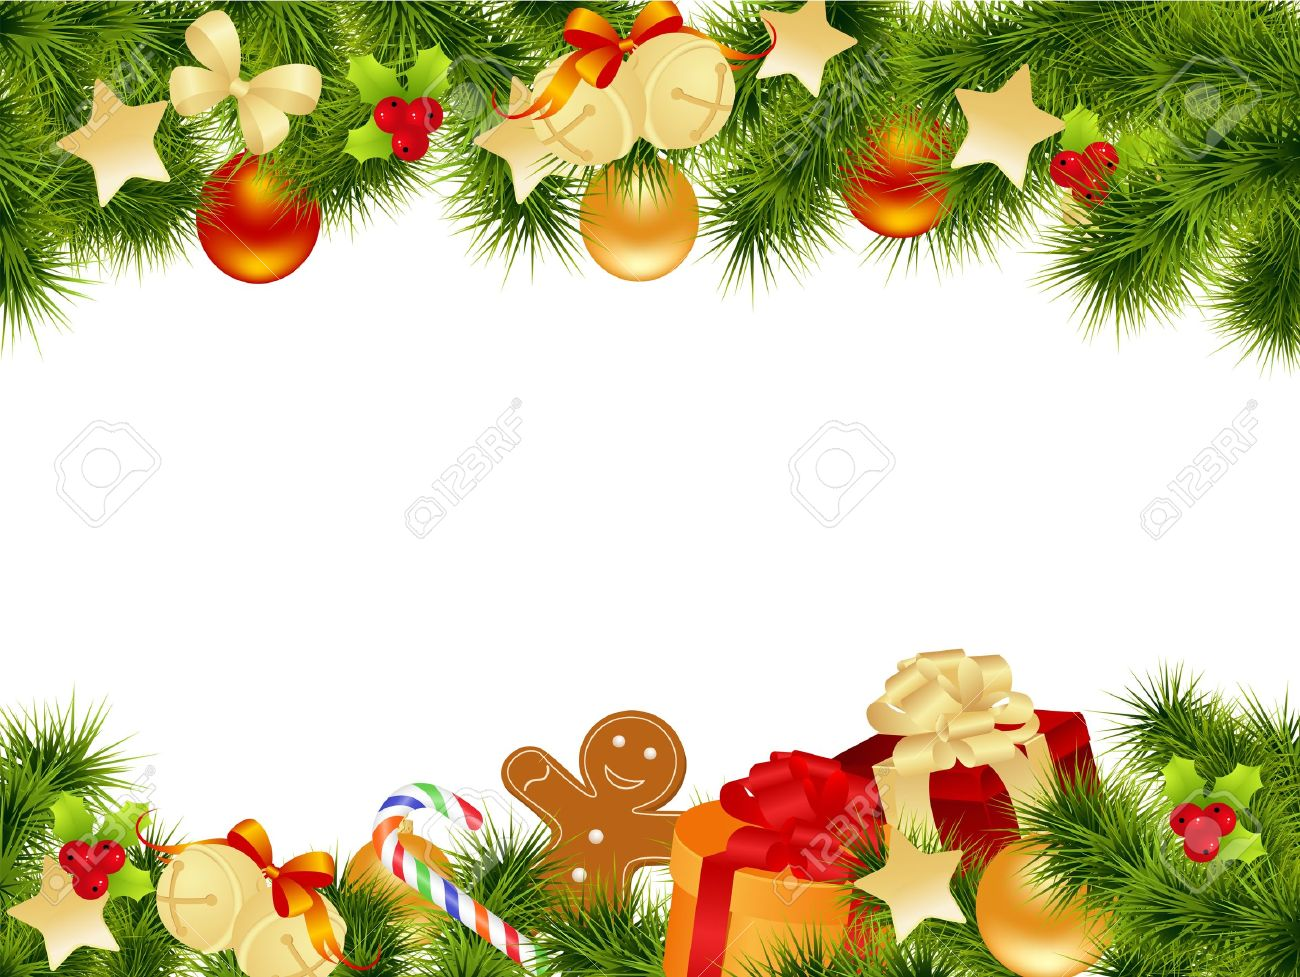 Christmas Card Border.Christmas Card Background Vector Illustration